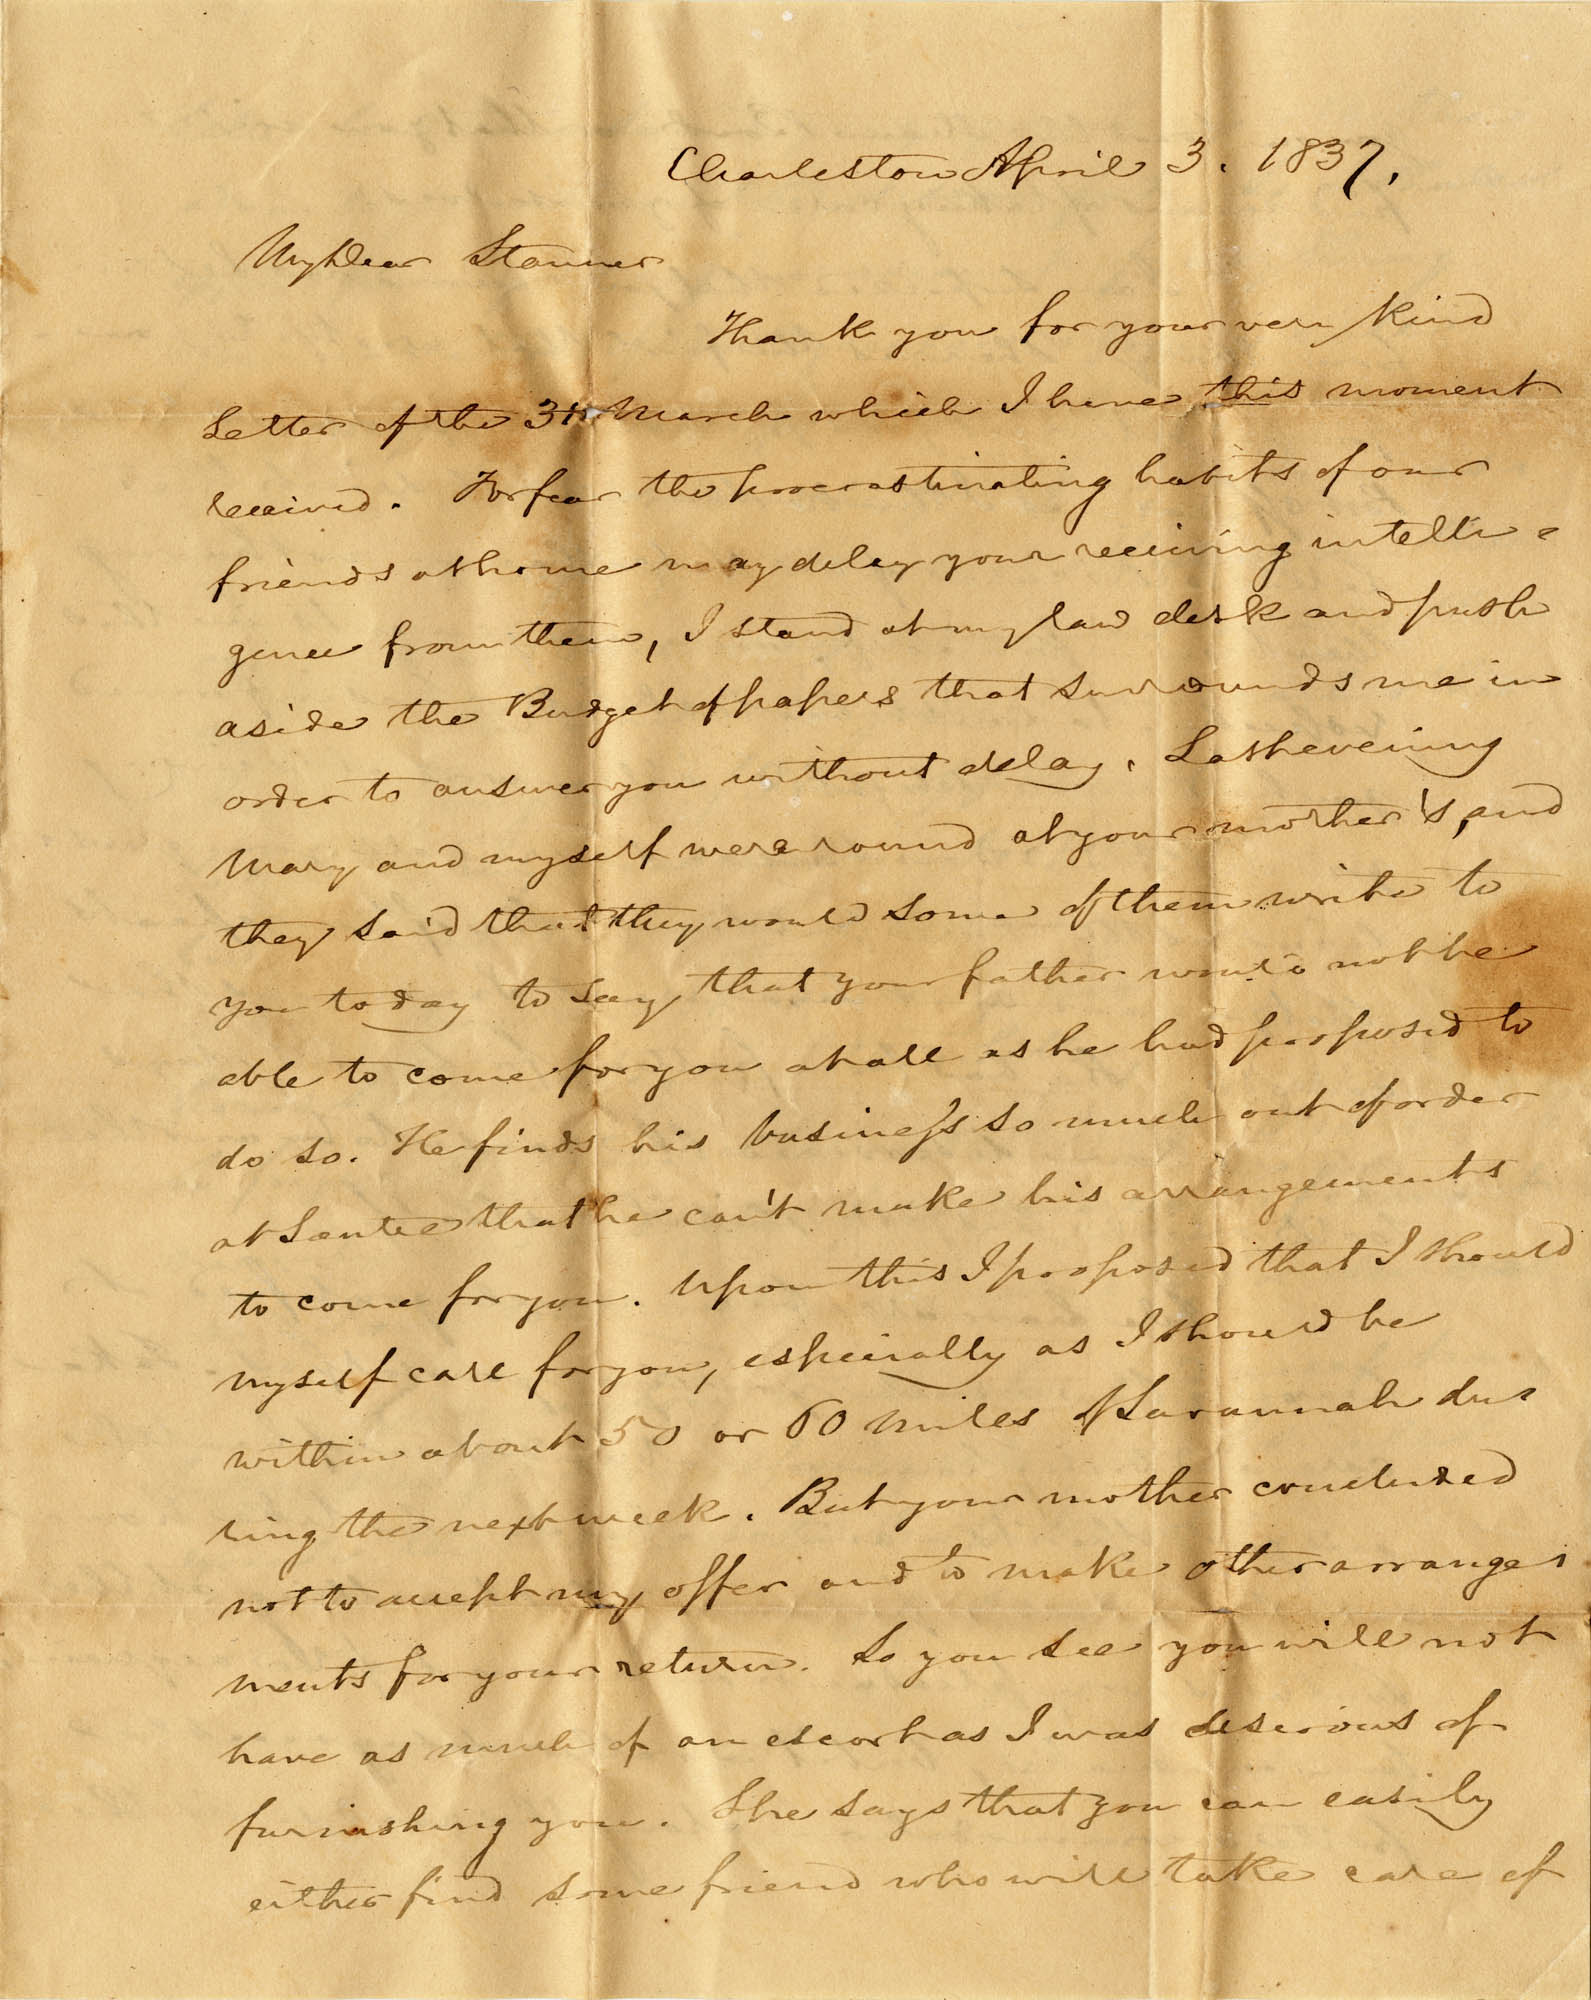 018. C.G. Memminger to Anna Wilkinson -- April 3, 1837